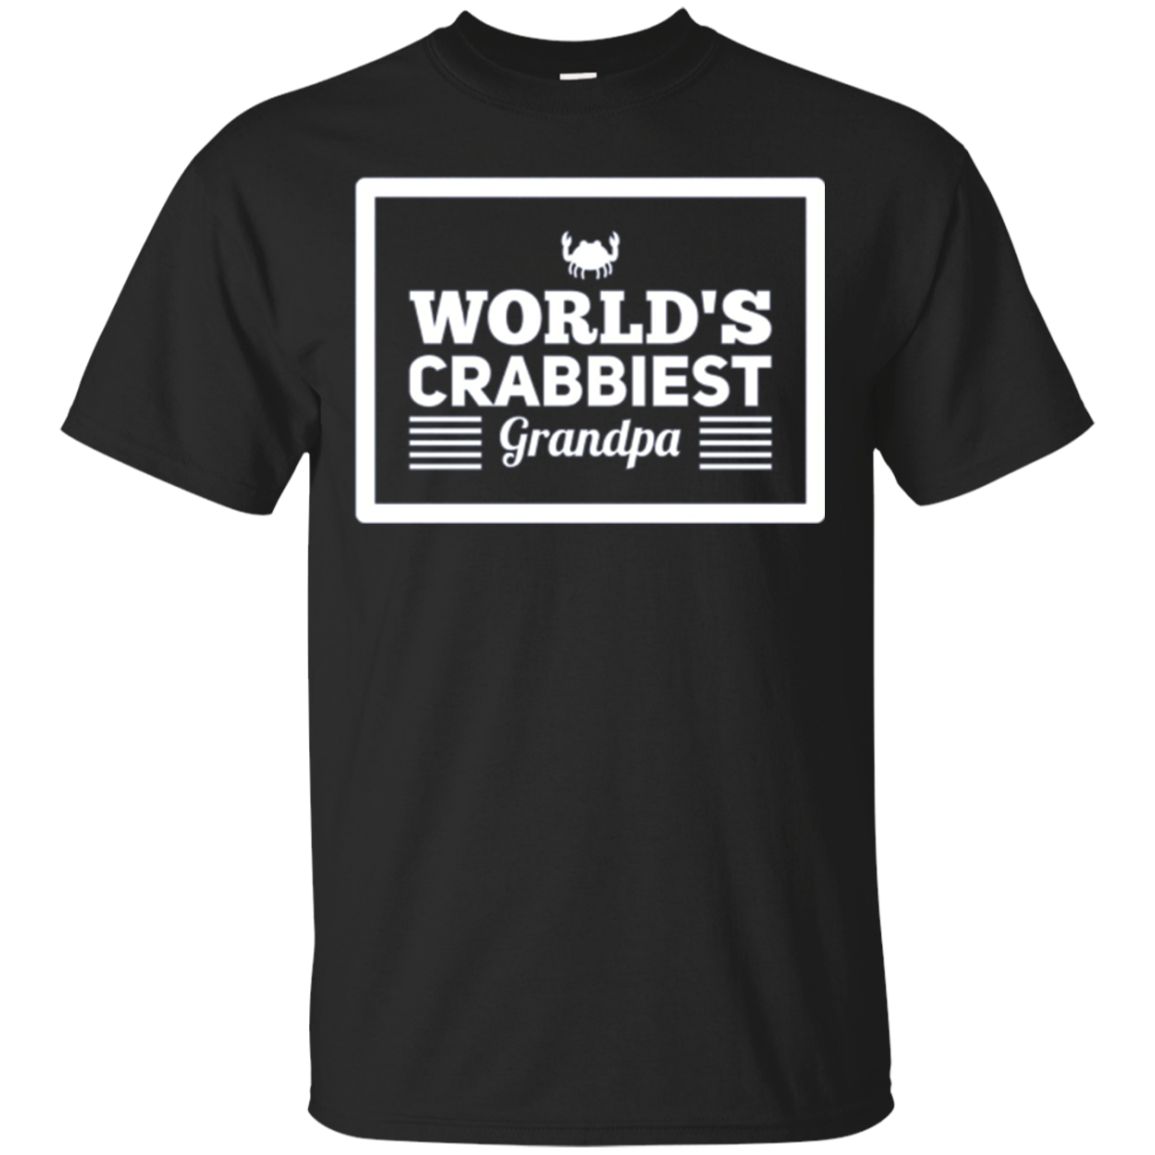 World's Crabbiest Grandpa Funny Gift Tshirt, Grouchy Gramps